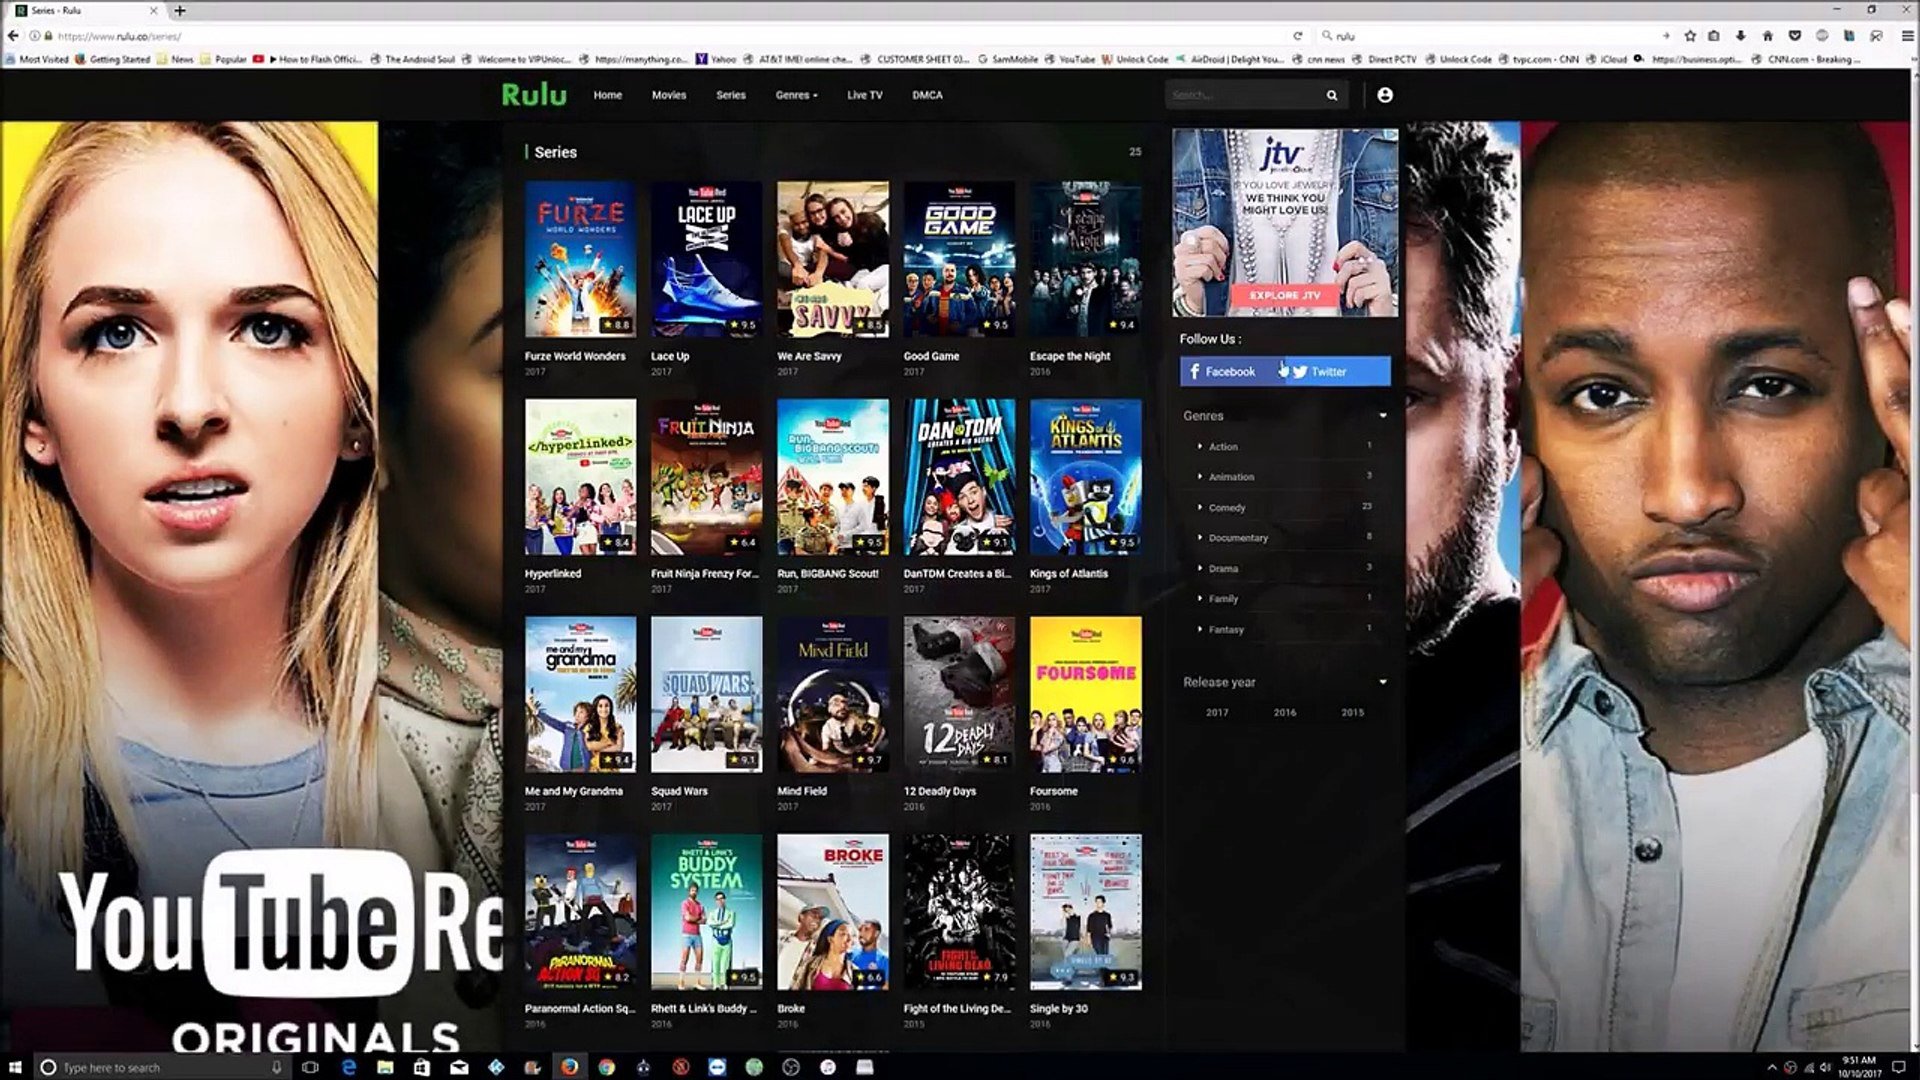 HOW TO WATCH FREE LIVE TV AND MOVIES YES FREE LIVE TV AND MOVIES